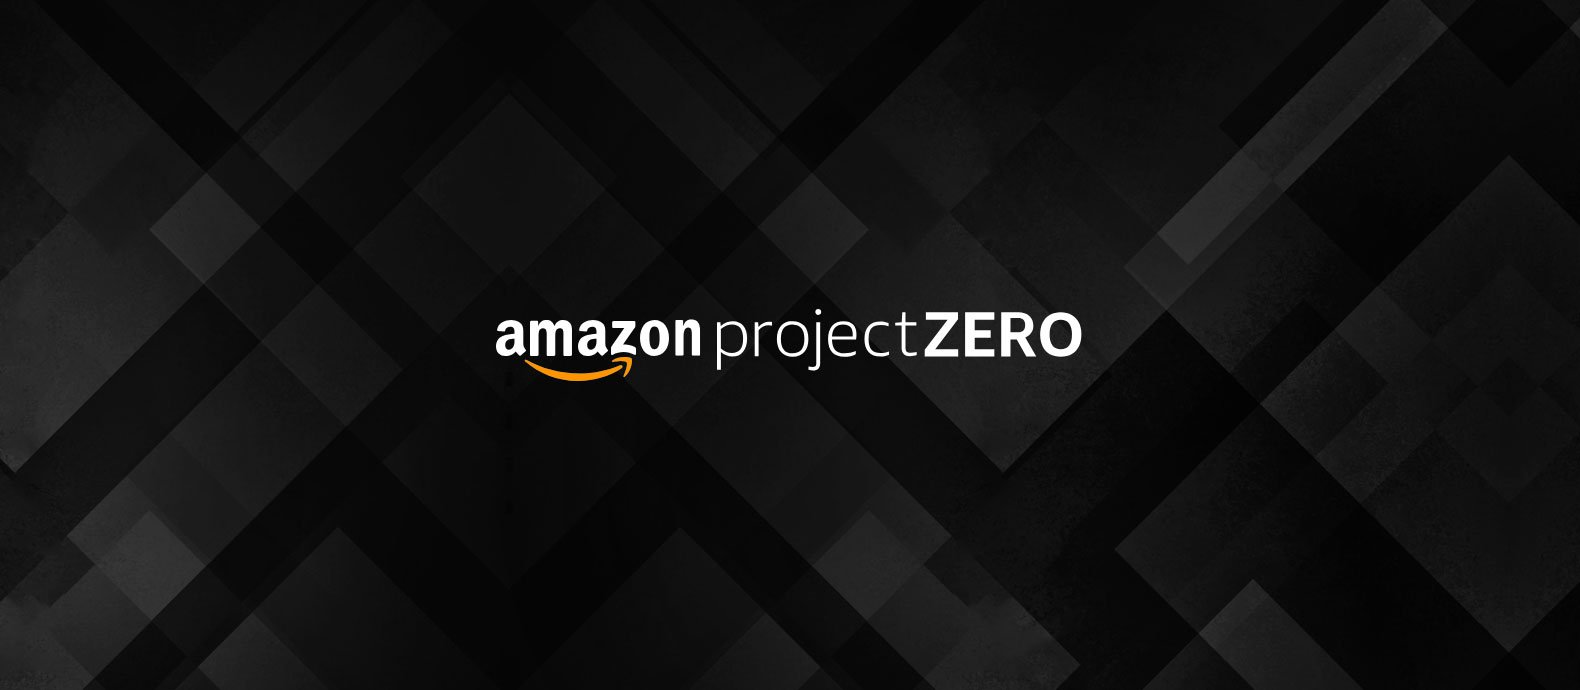 Amazon Project Zero aims to stop counterfeits on its platform